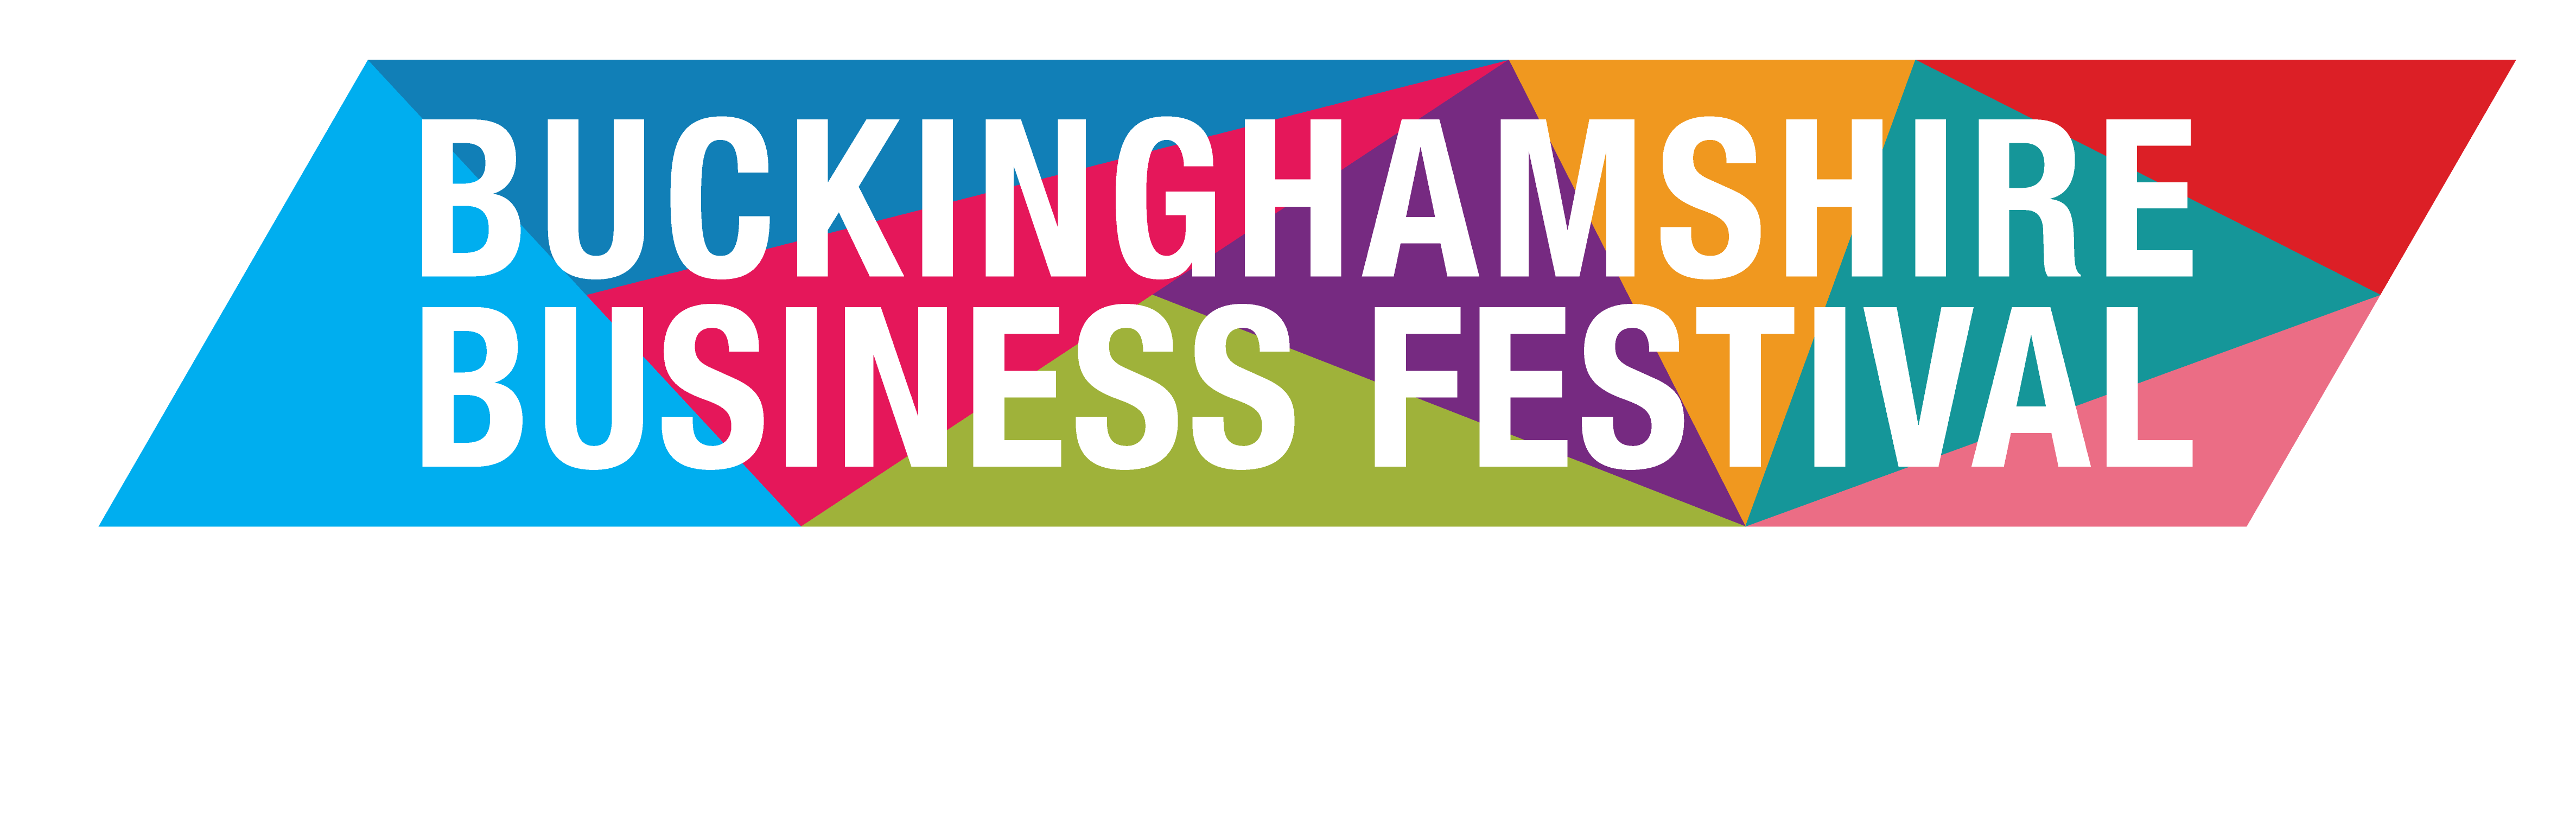 Buckinghamshire Business Festival